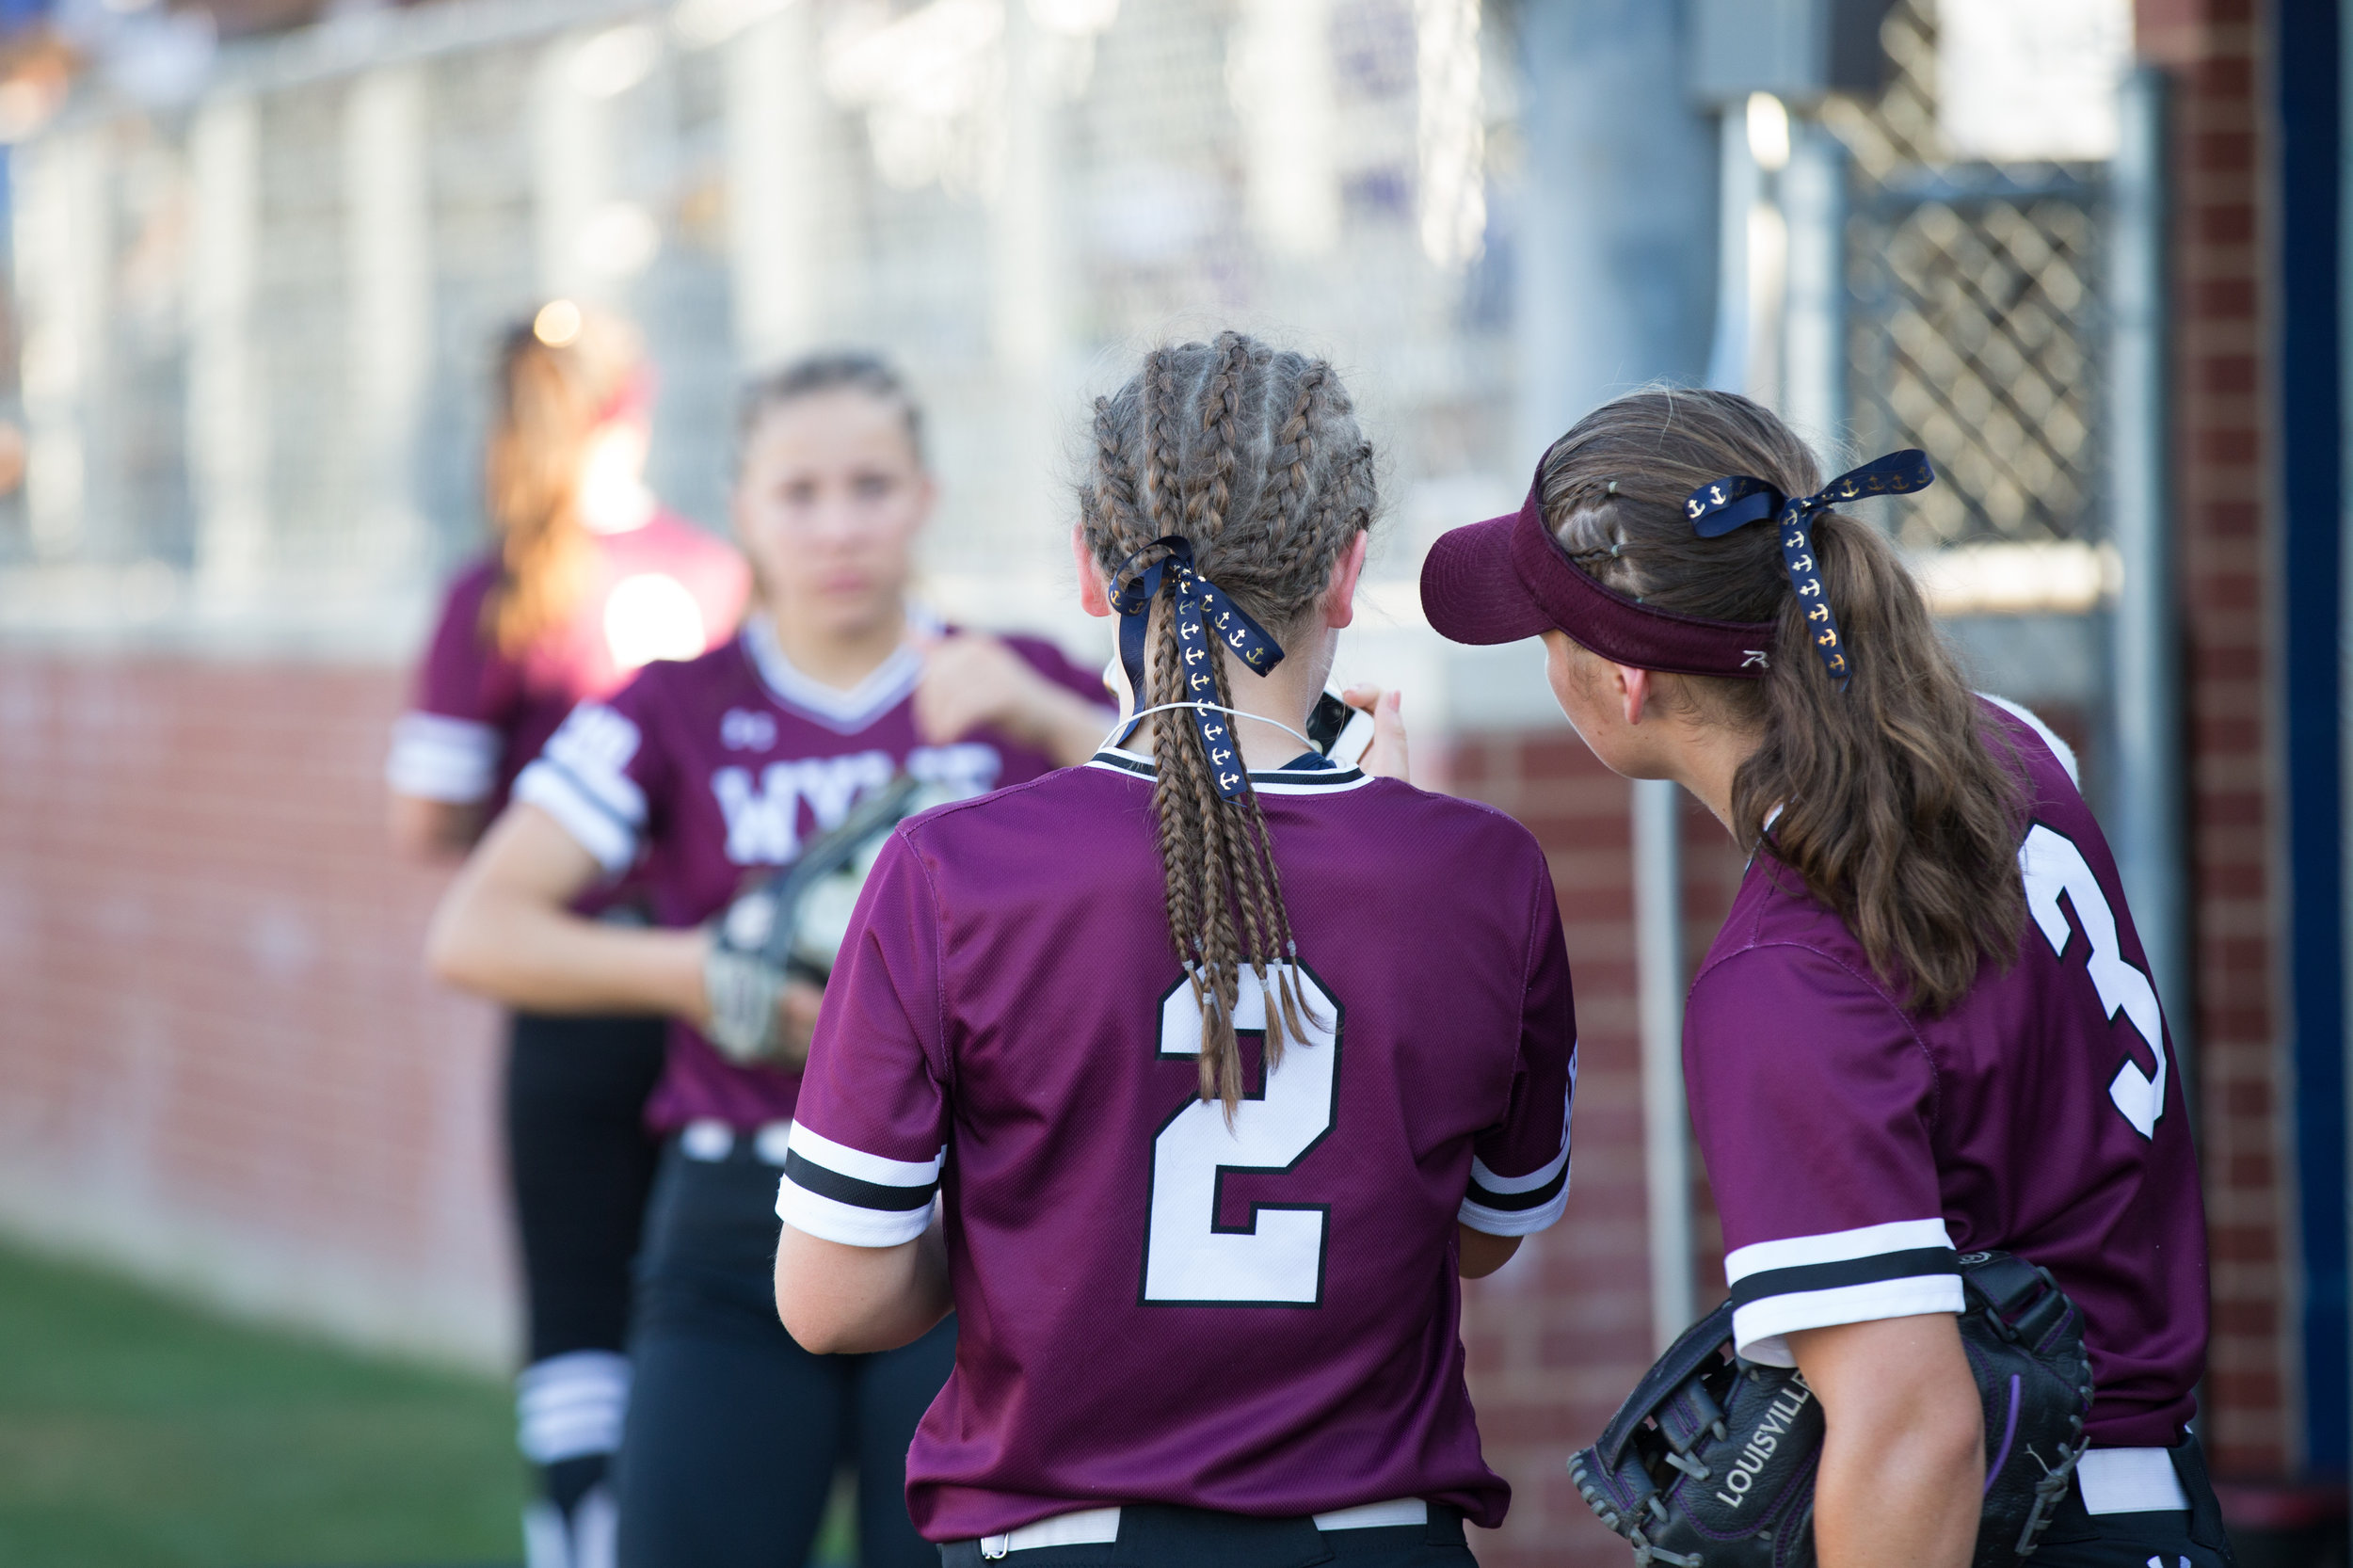 5_18 Wylie Softball-104.jpg